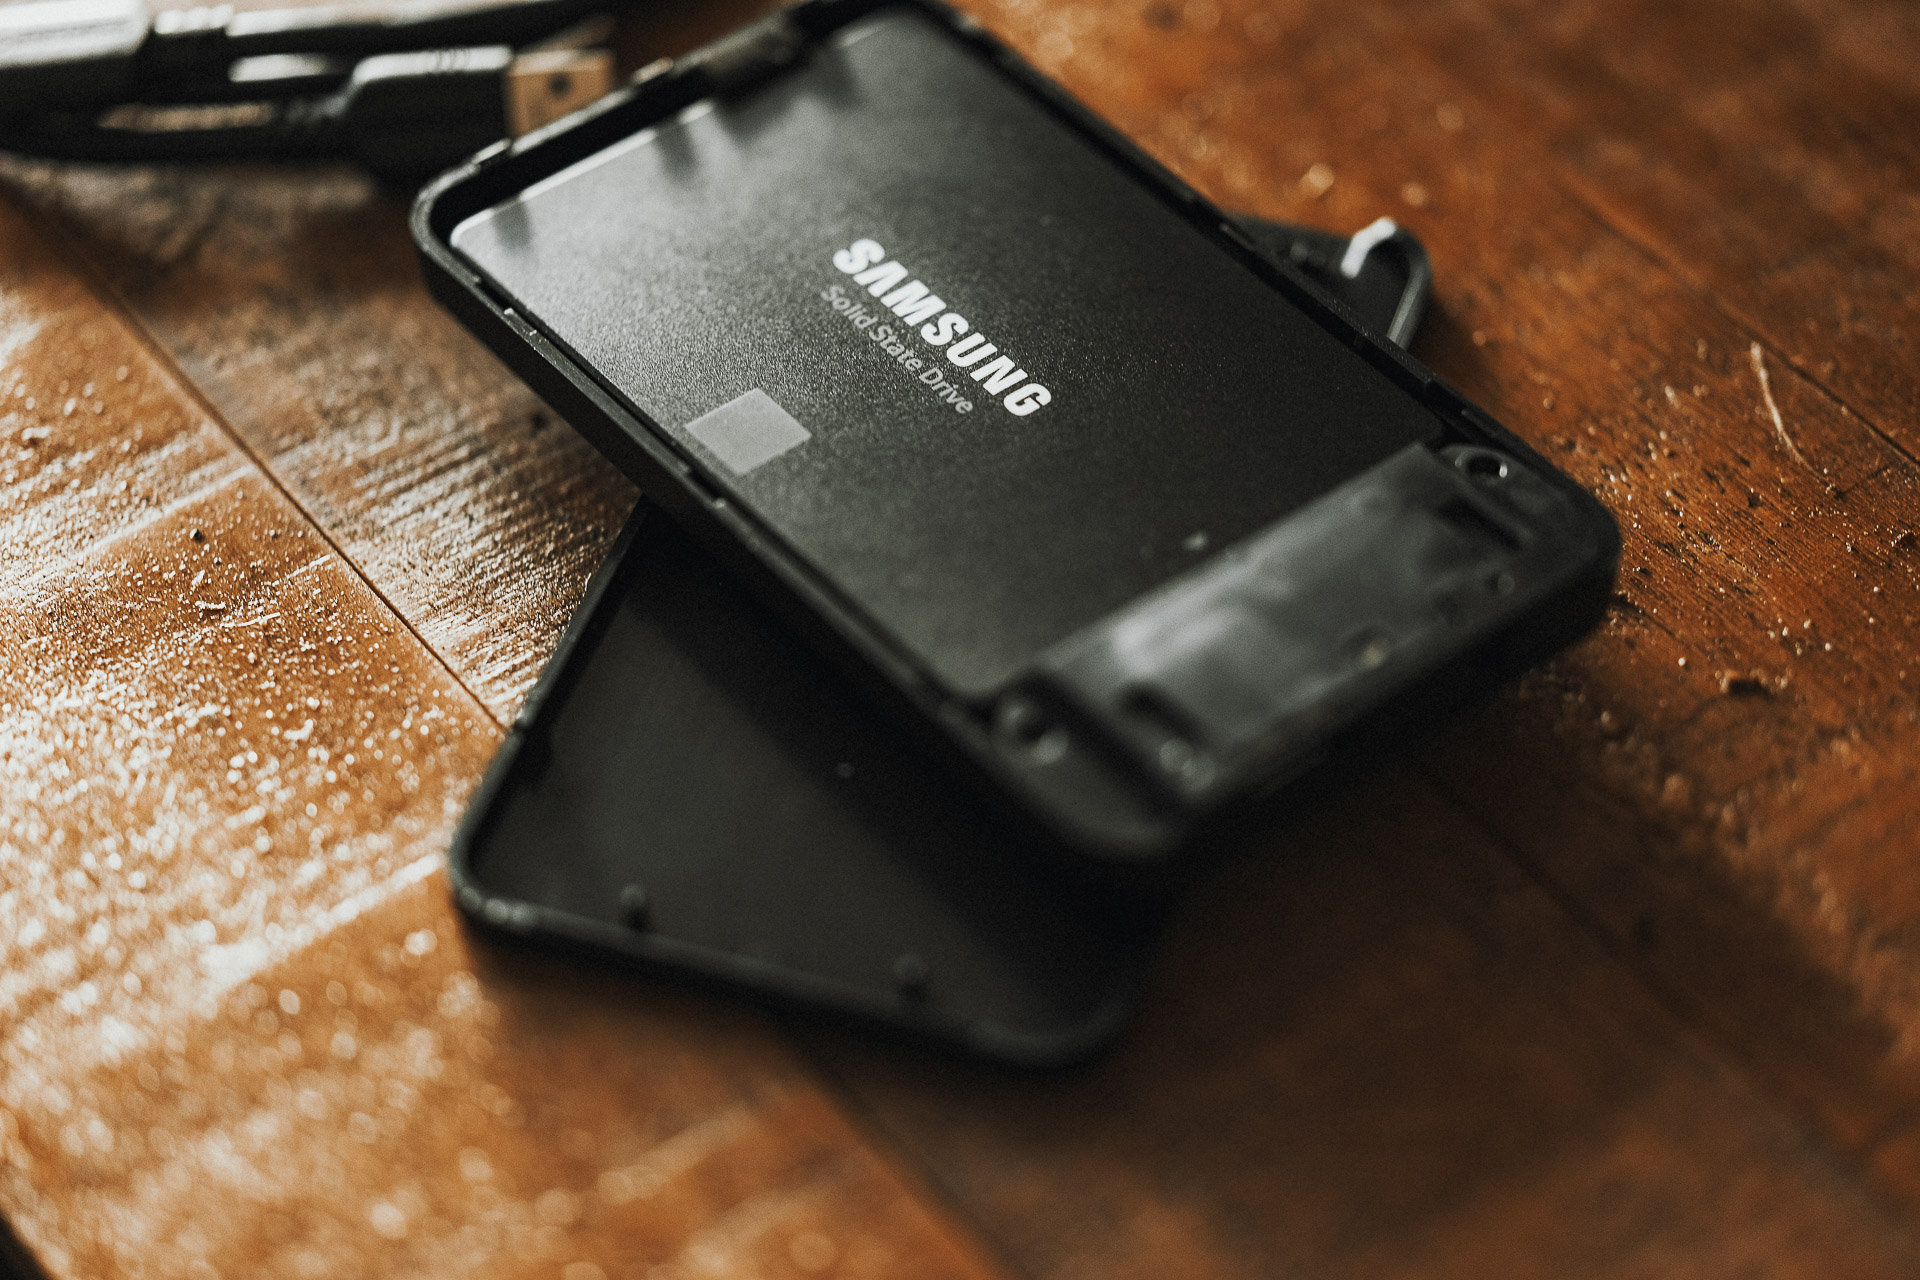 Samsung 1TB SSD  inside the portable  Sabrent SATA USB-3.1 Enclosure